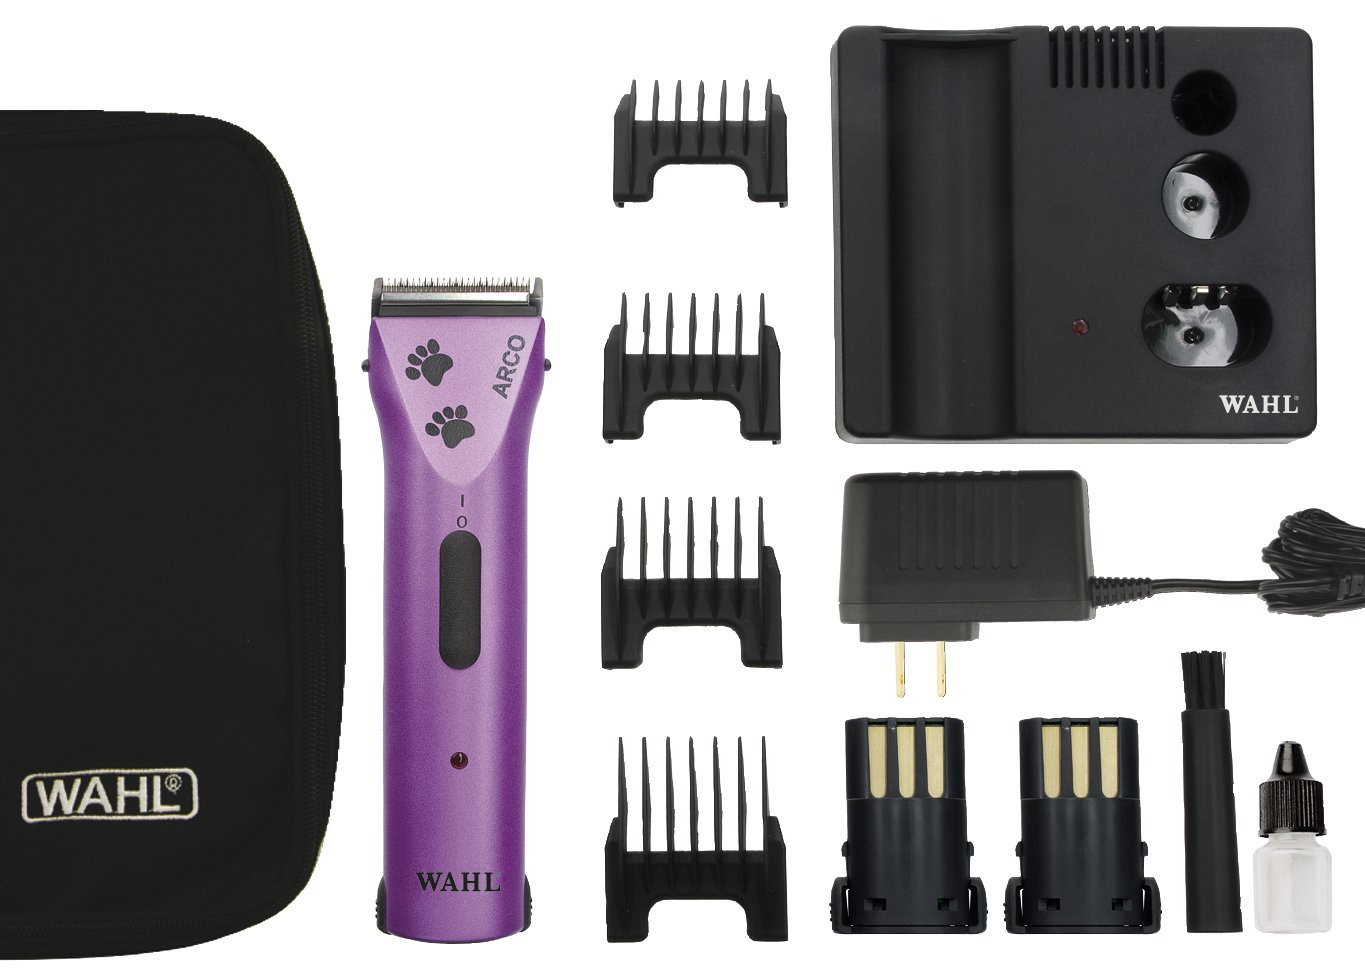 Wahl-ARCO-SE-Professional-Cordless